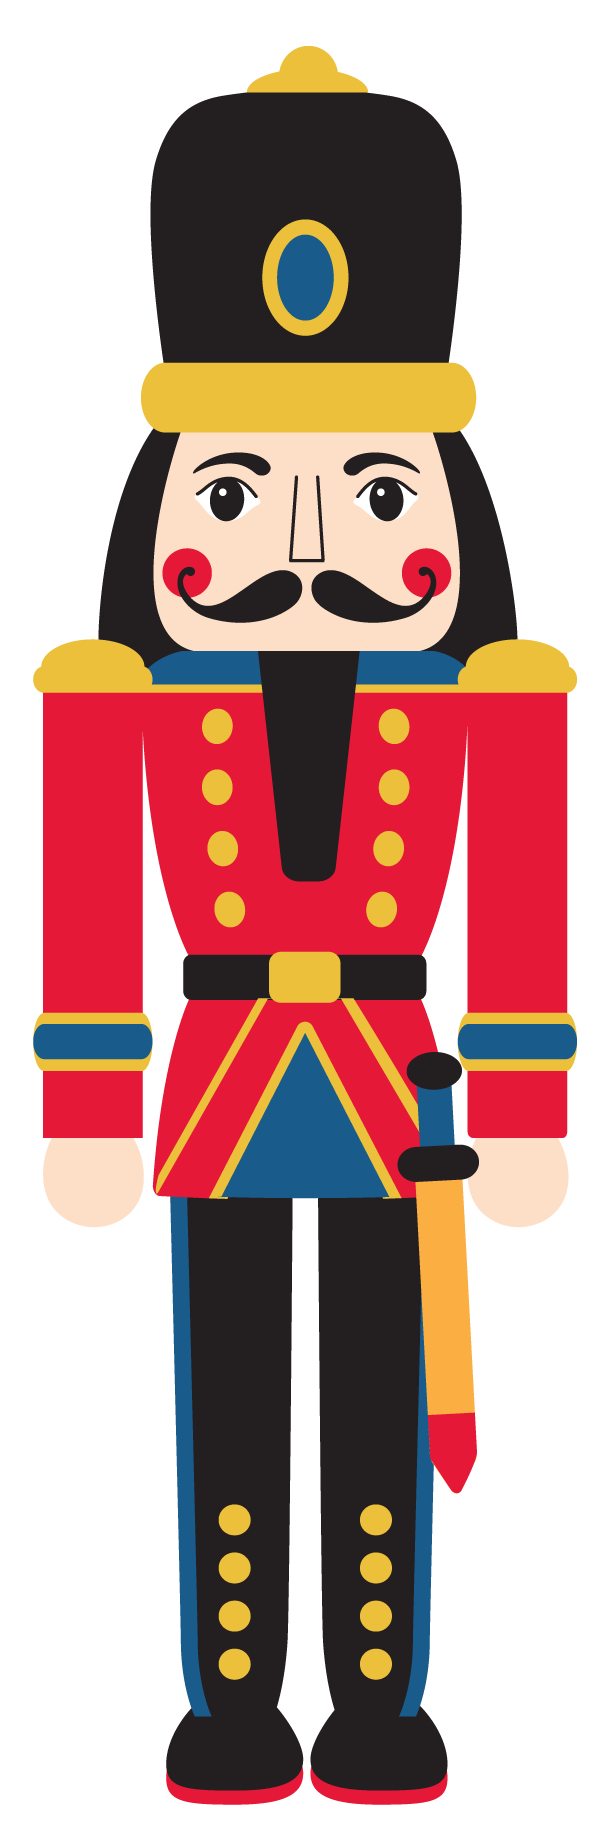 The community nutcracker icon